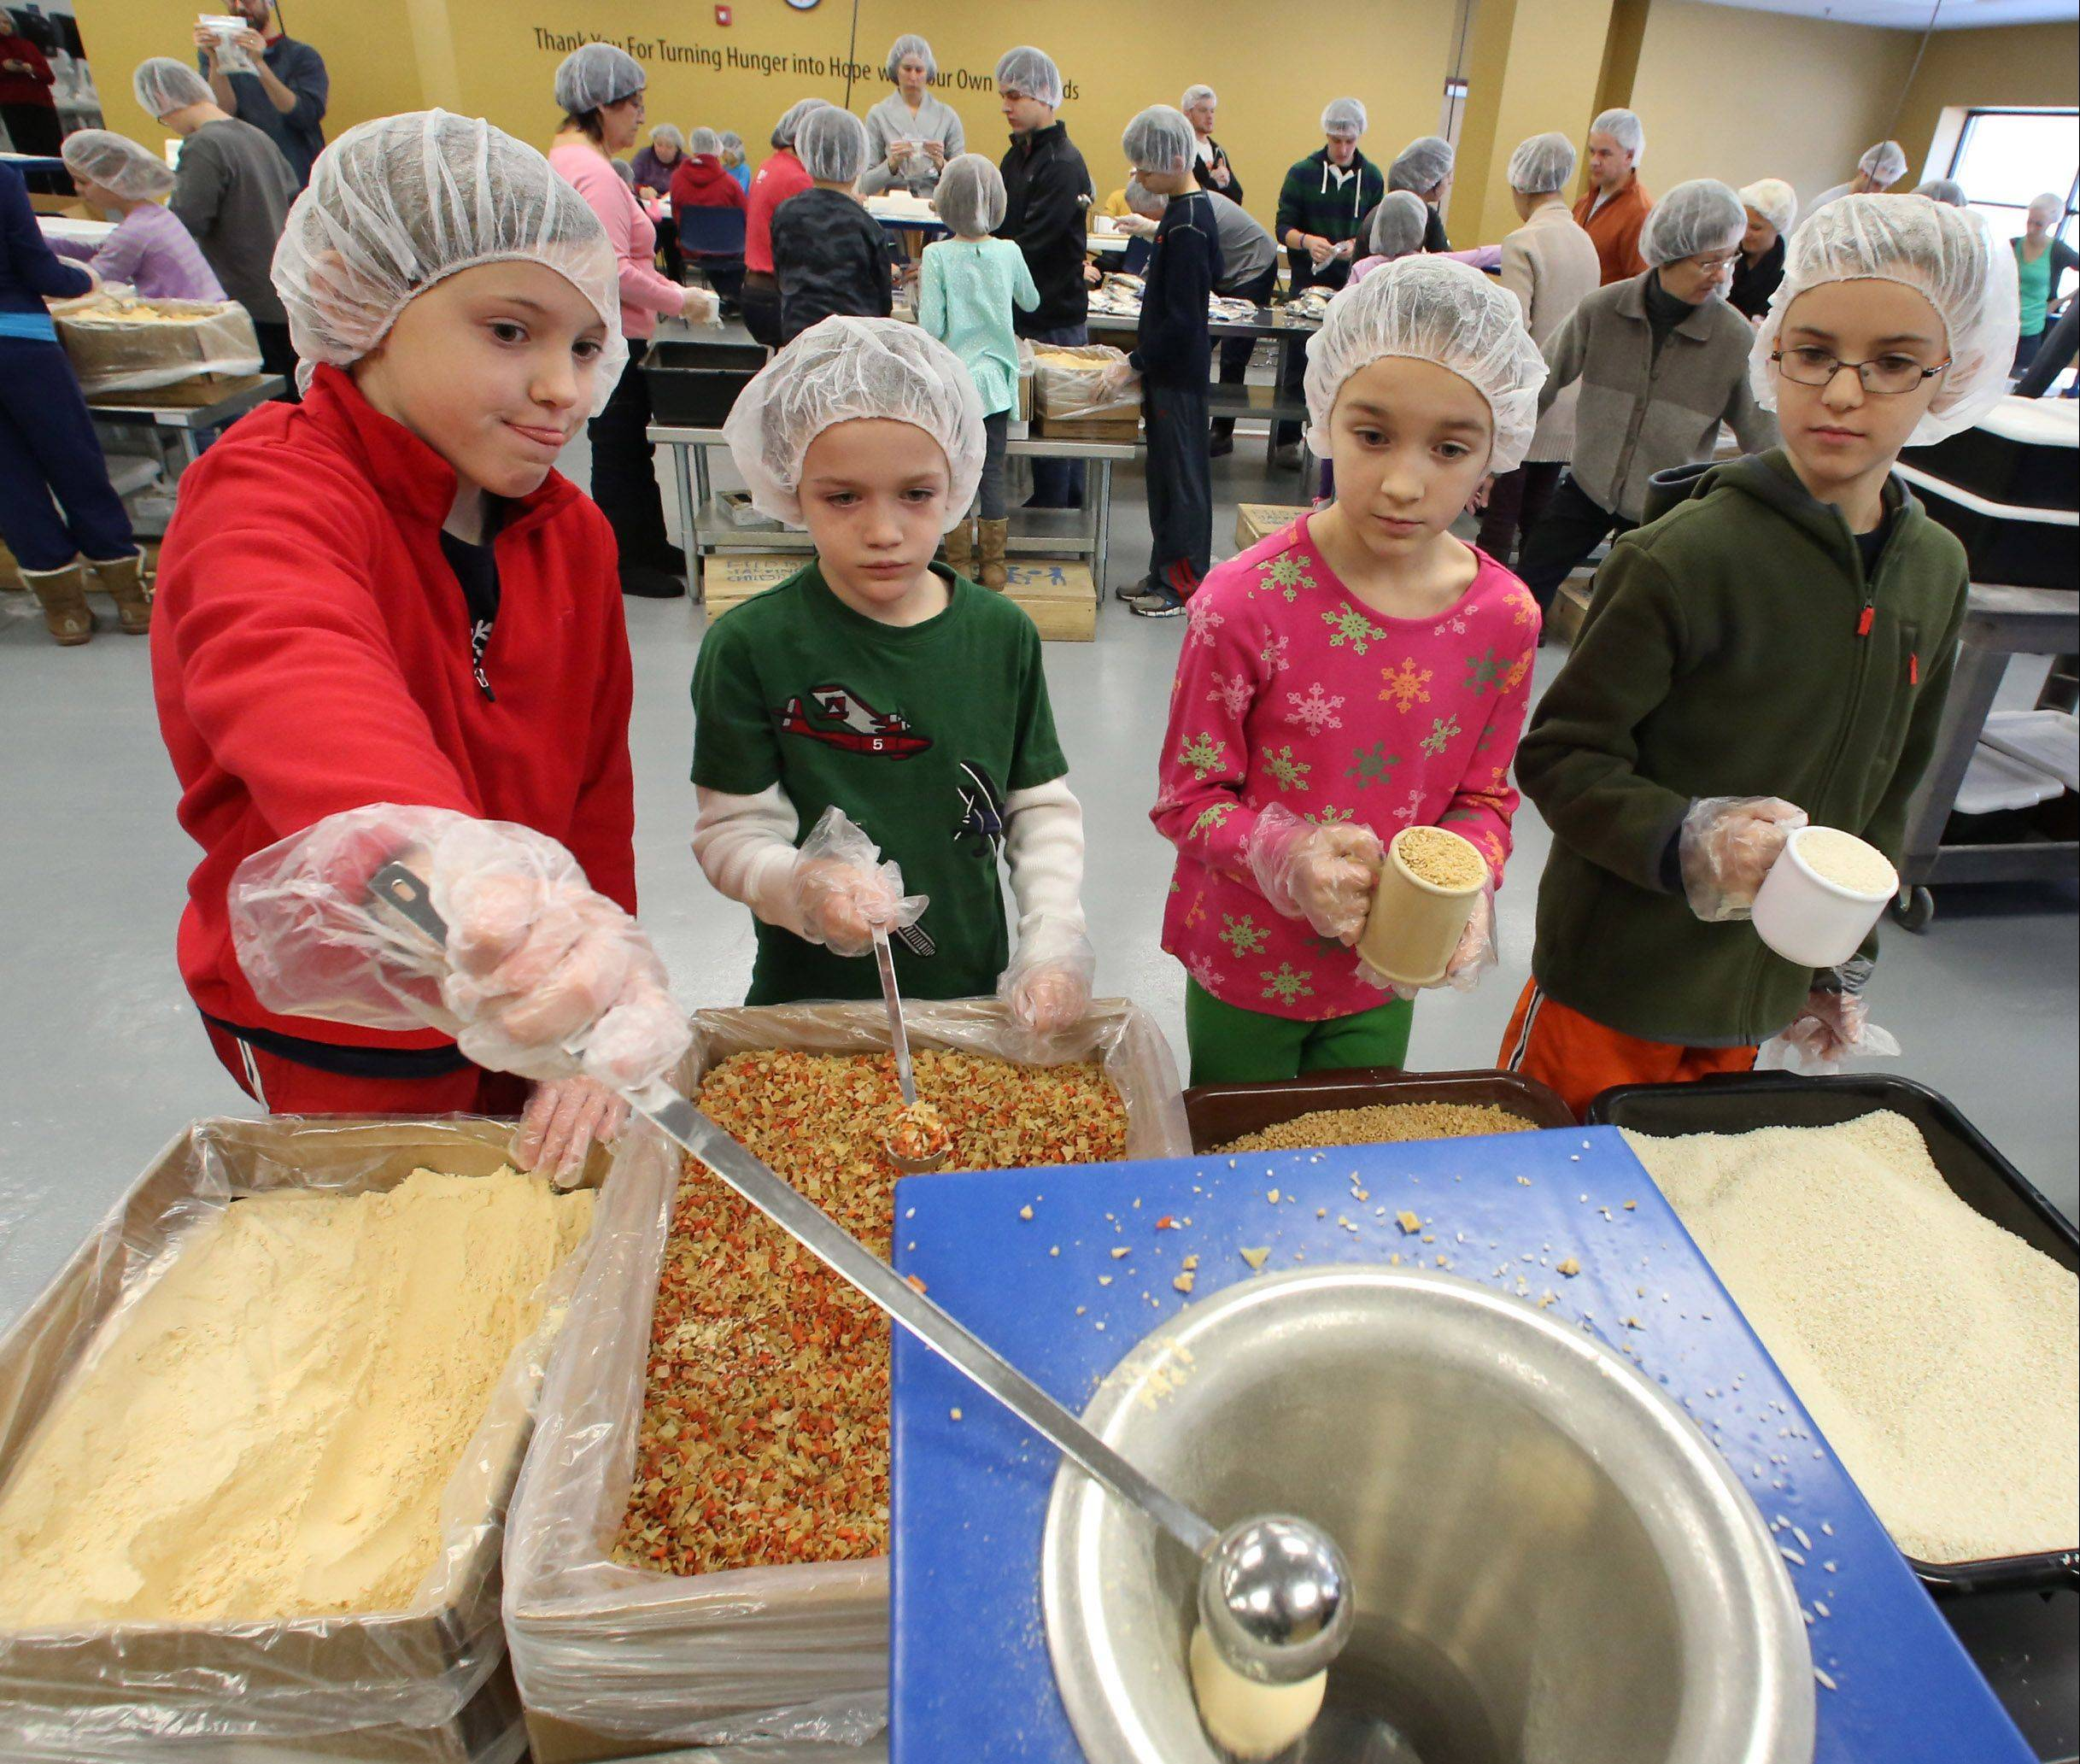 At left, Megan Roberts, 8, pours an ingredient into a meal-packet, as, from left, Davis Hillback, 6, Abbie Hillback, 8, and Jonah Roberts, 8, all of Libertyville, wait their turn. The food packets will be sent to hungry kids in Haiti and Cambodia.